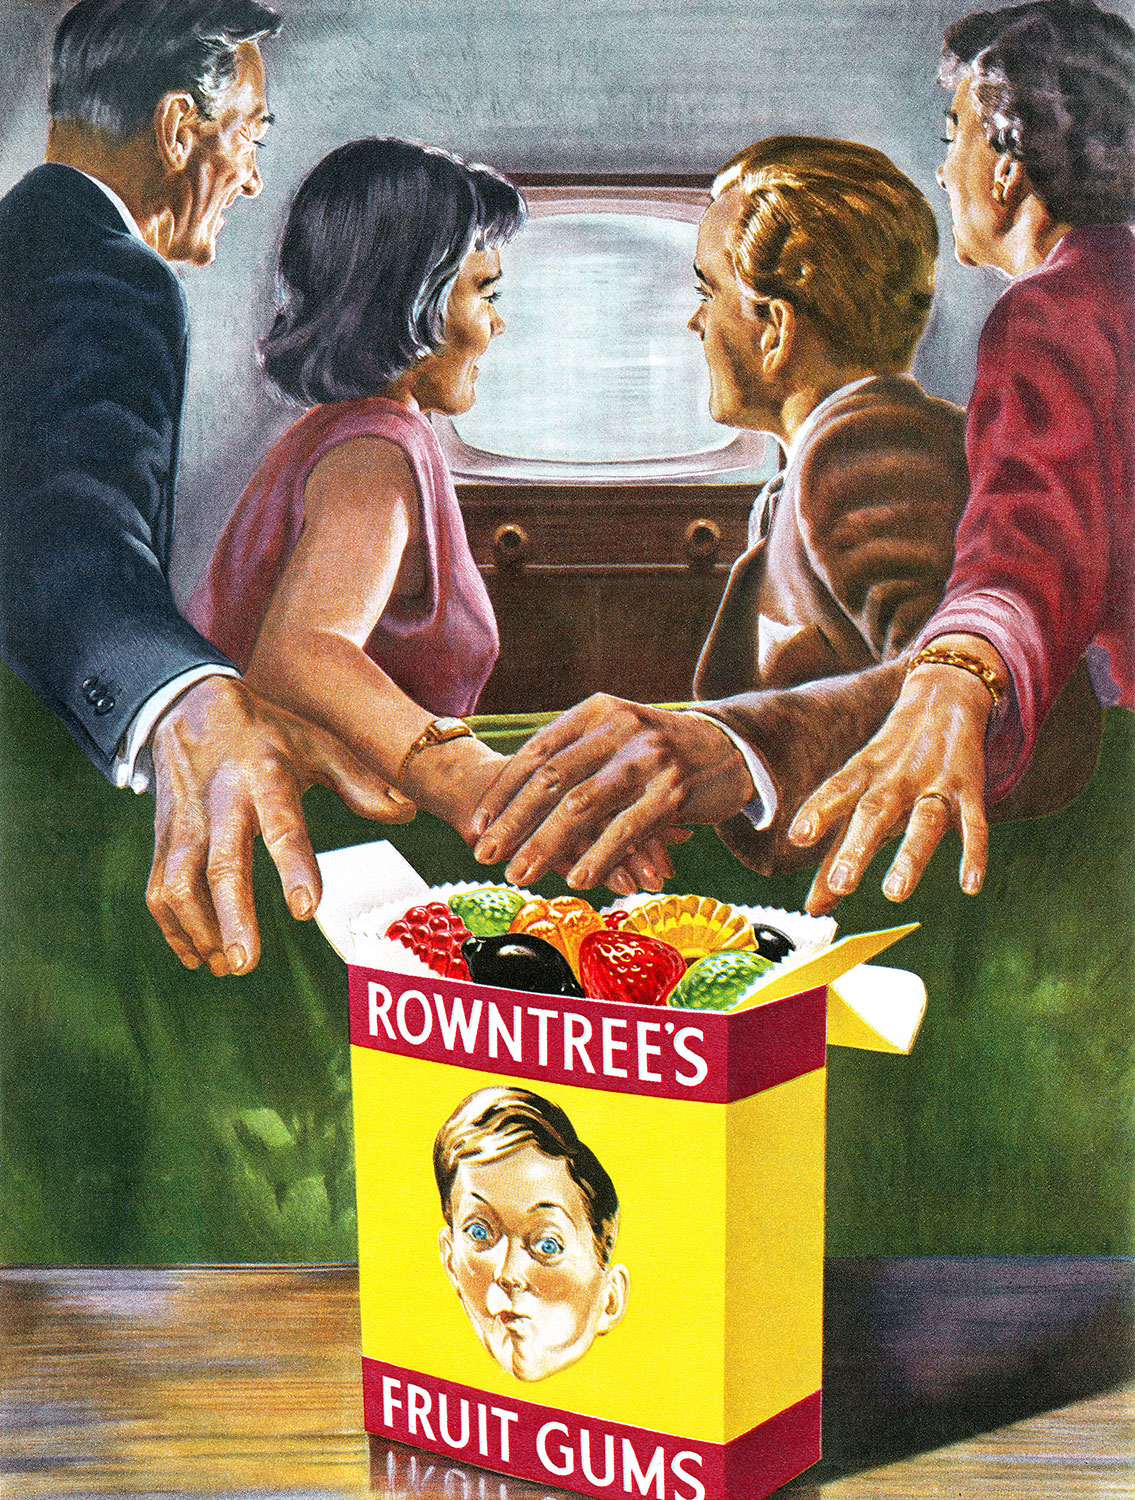 1956 British advertisement for Rowntree's Fruit Gums